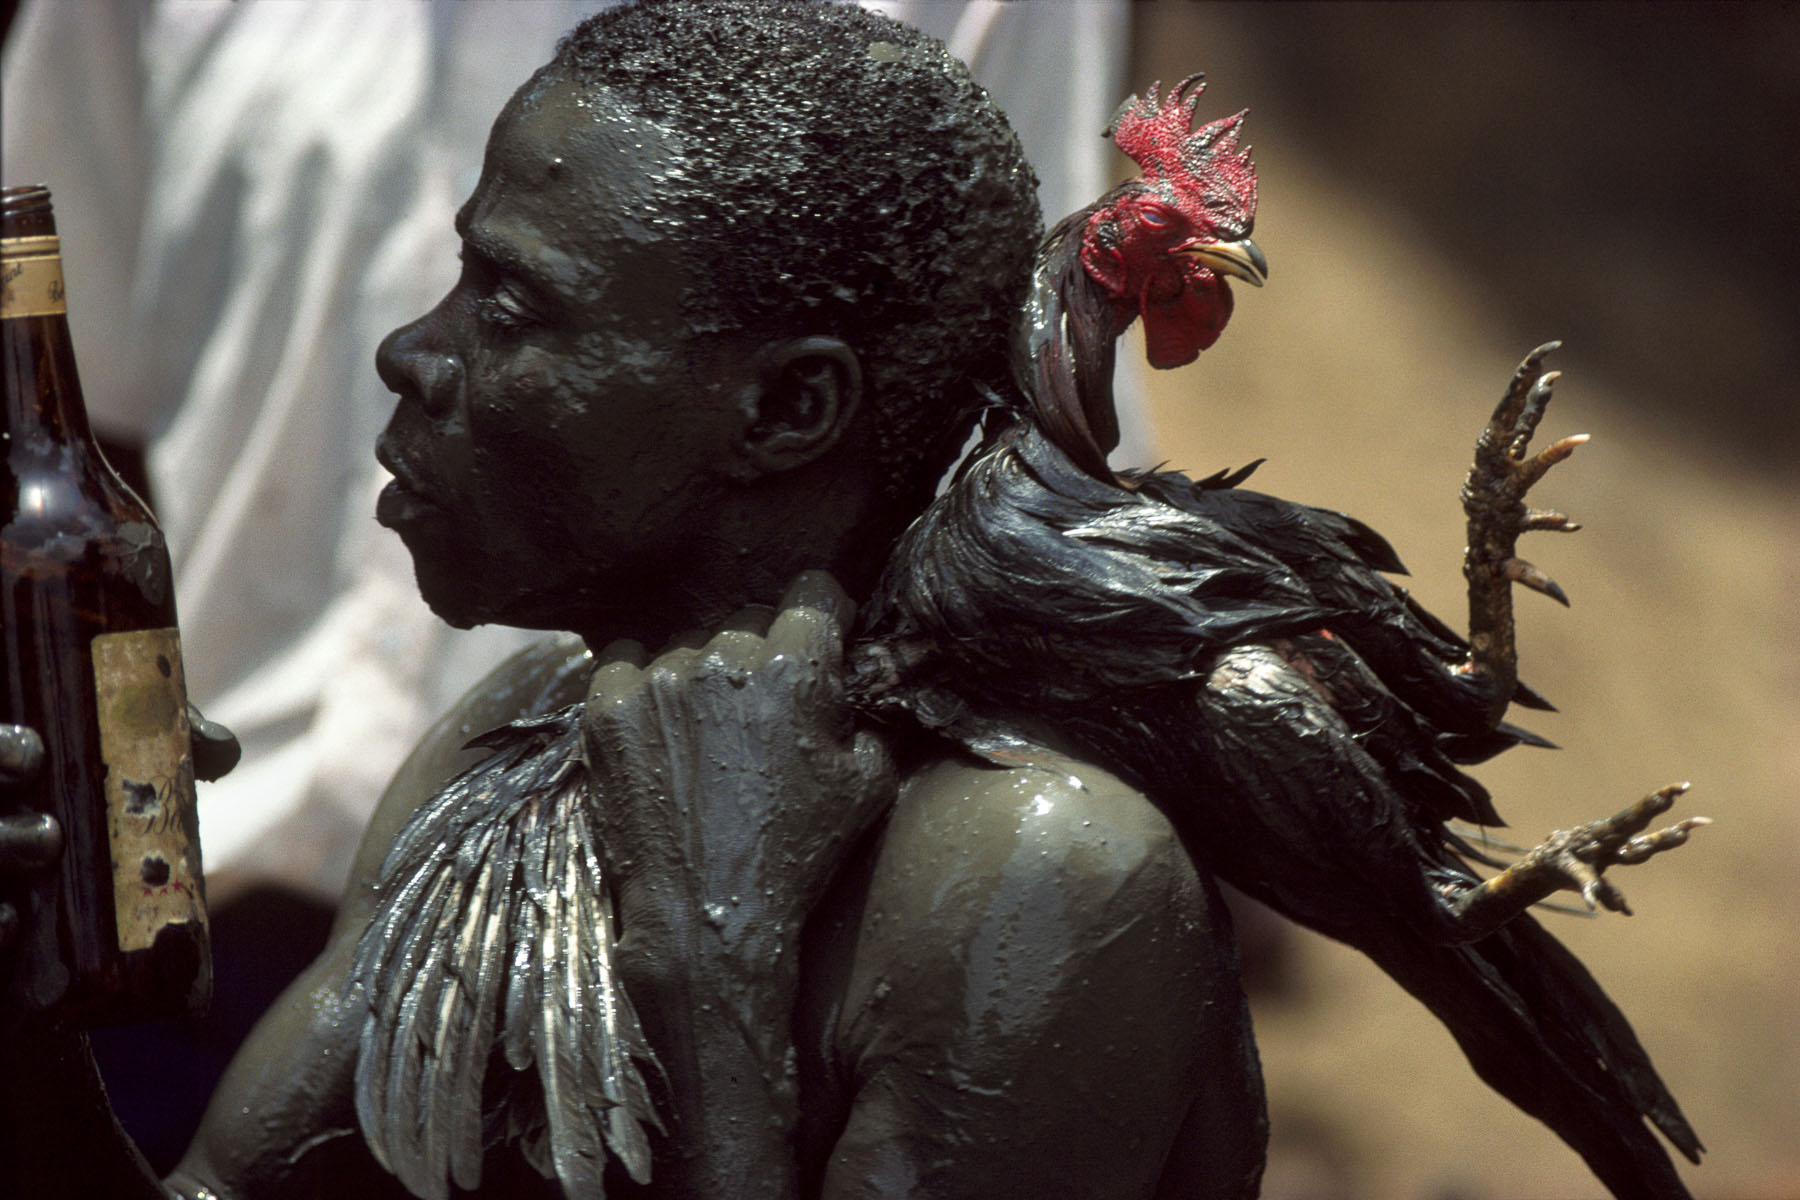 A believer about to sacrifice a rooster during the annual pilgrimage dedicated to the loa (spirit) Ogou Feray in July 1994